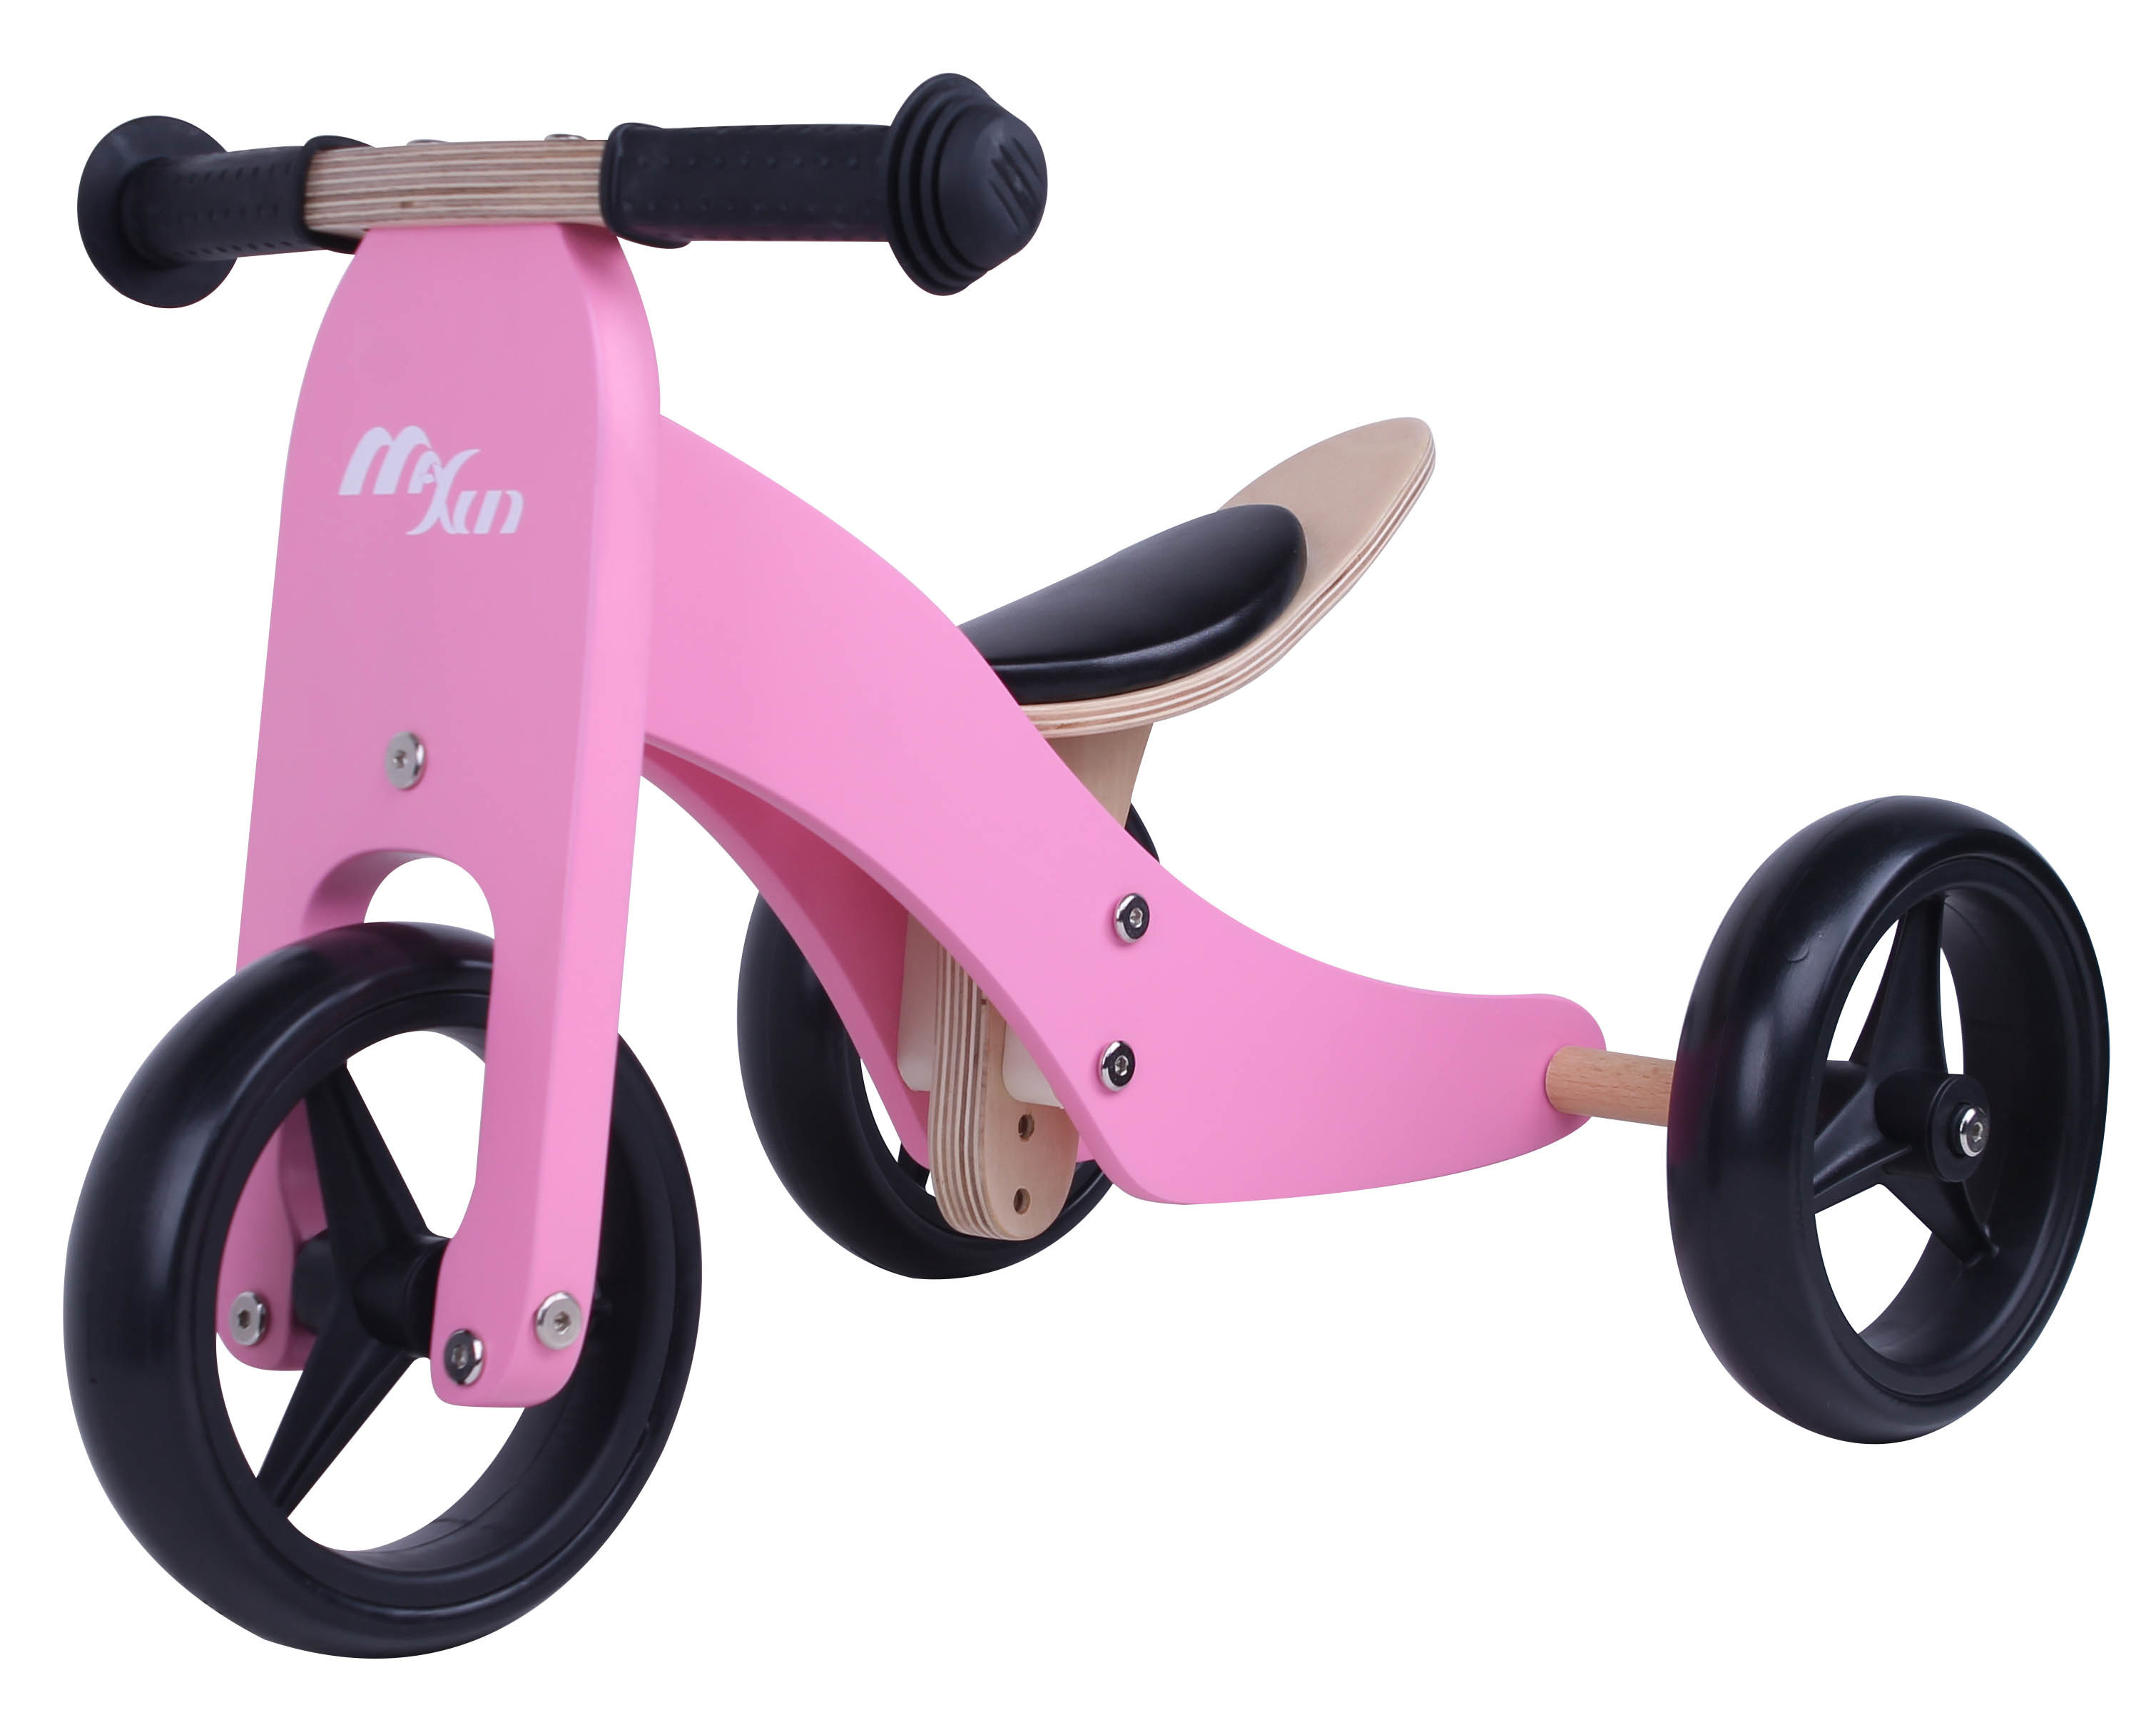 2017 Wholesale Wooden Balance Mini Bike 2 in 1for Toddlers, High Quality Wooden Balance Mini Bike for Baby